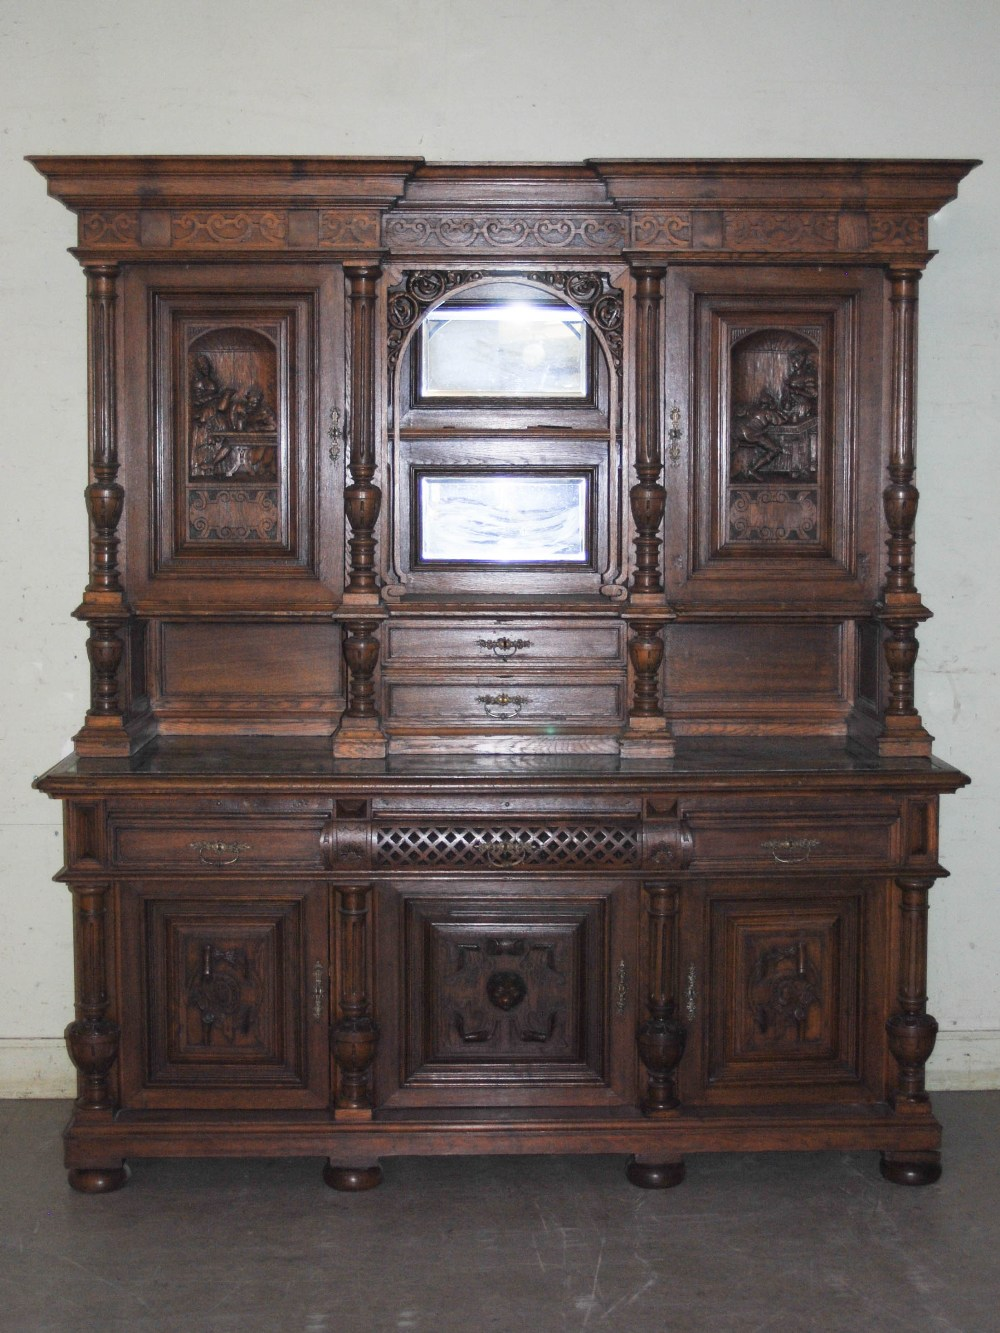 Lot 97 - A late 19th century oak sideboard, the upright back with two bevelled mirror recesses and two